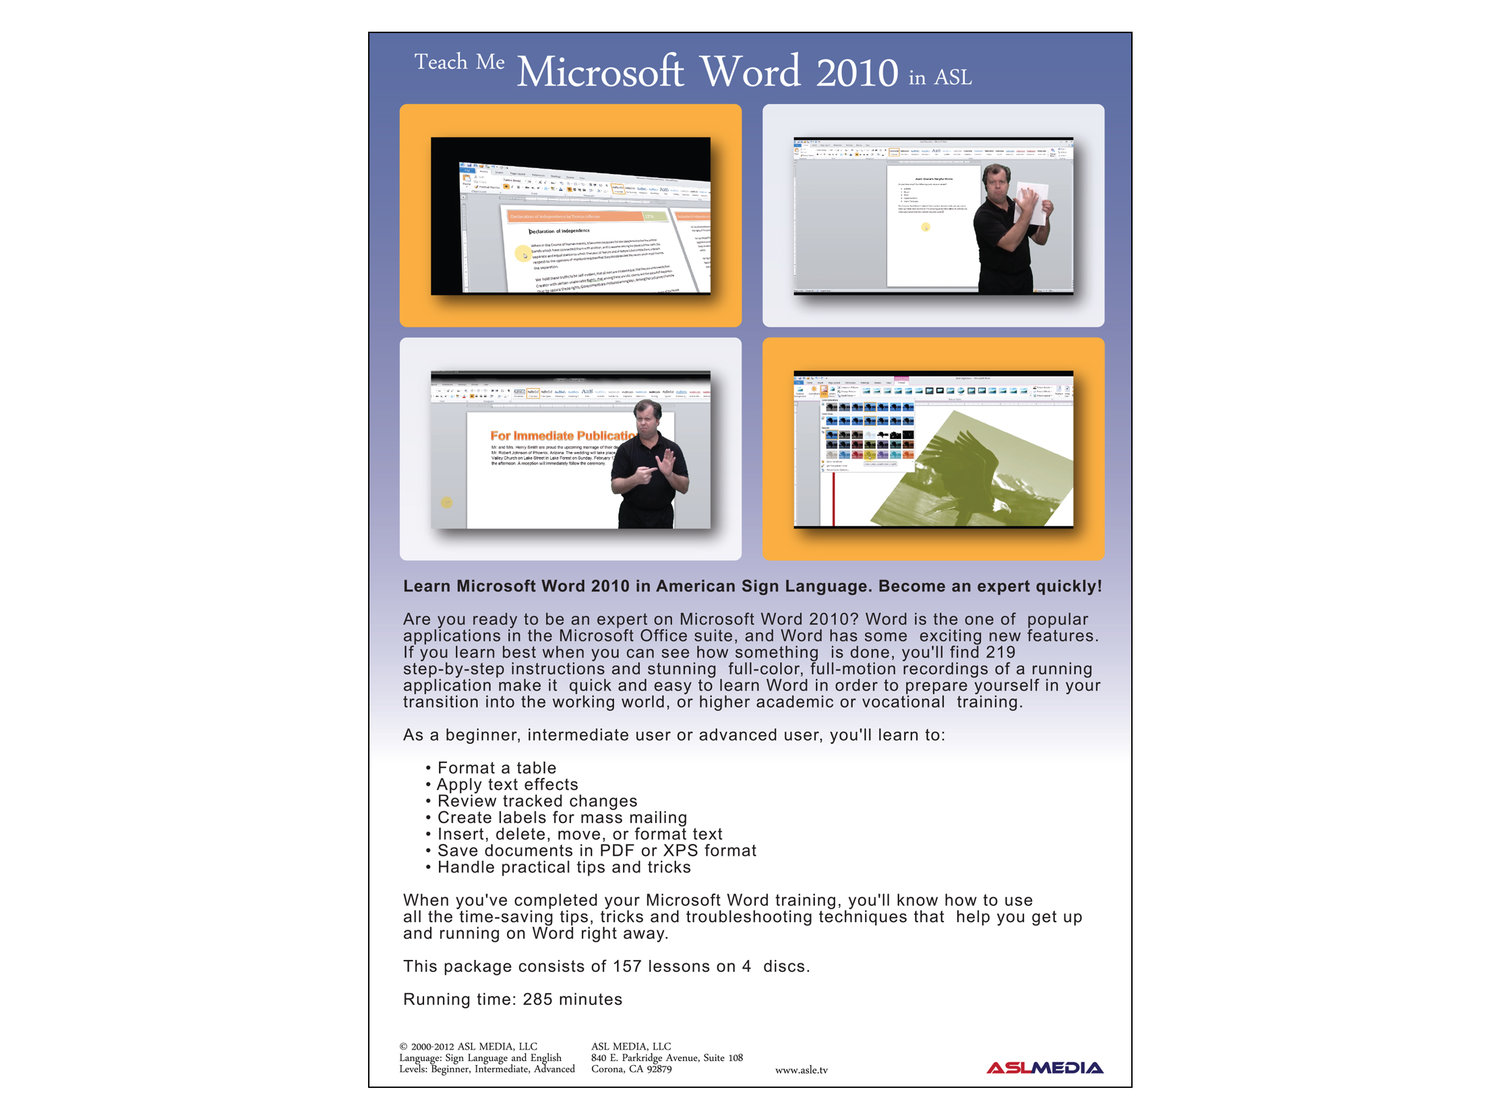 Teach Me Microsoft Word 2010 In Asl Homestudy Dvd